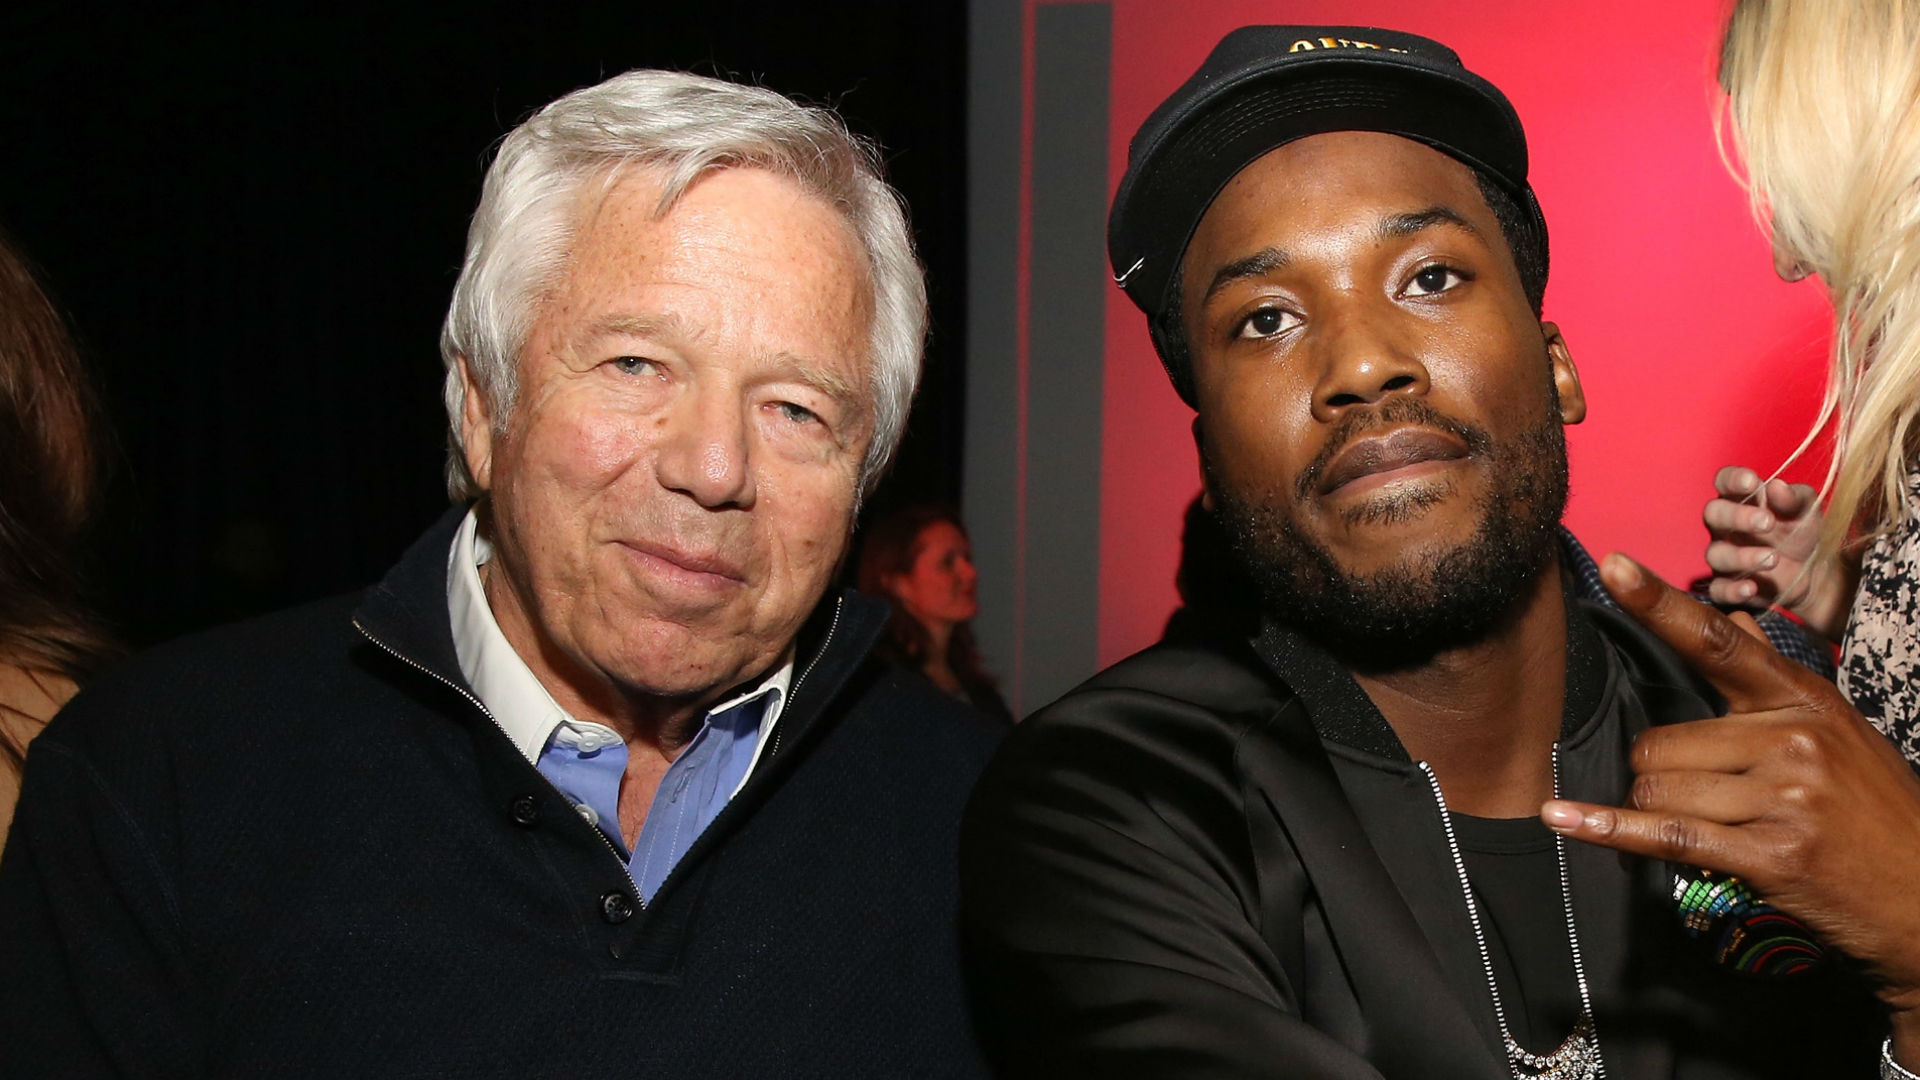 Patriots owner Robert Kraft visited rapper Meek Mill in prison